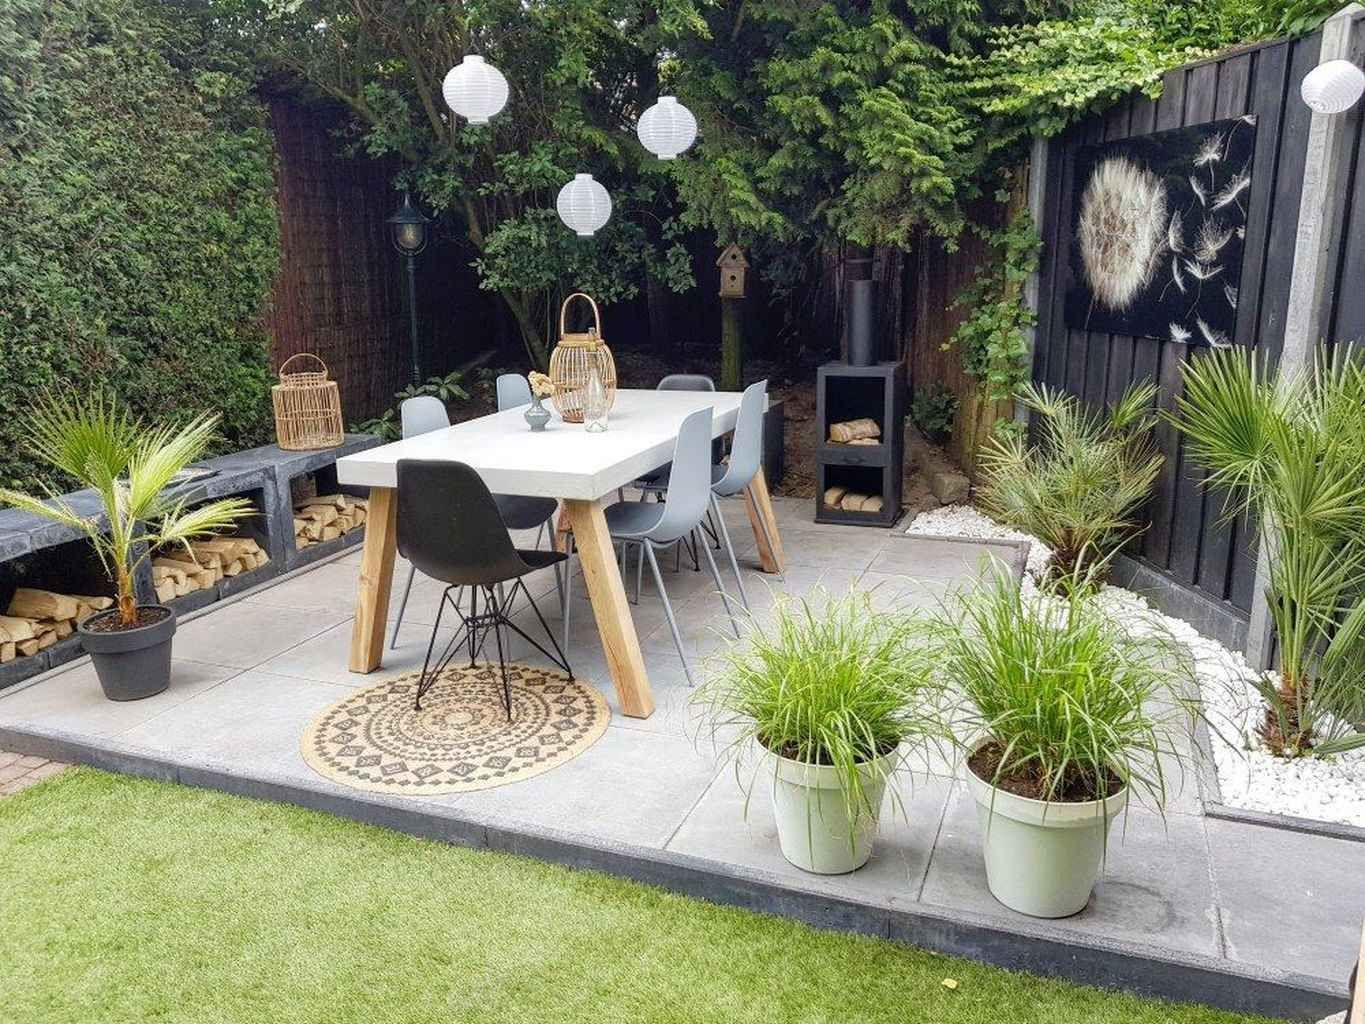 Build Maintain And Renovate Your Own Garden Furniture We Will